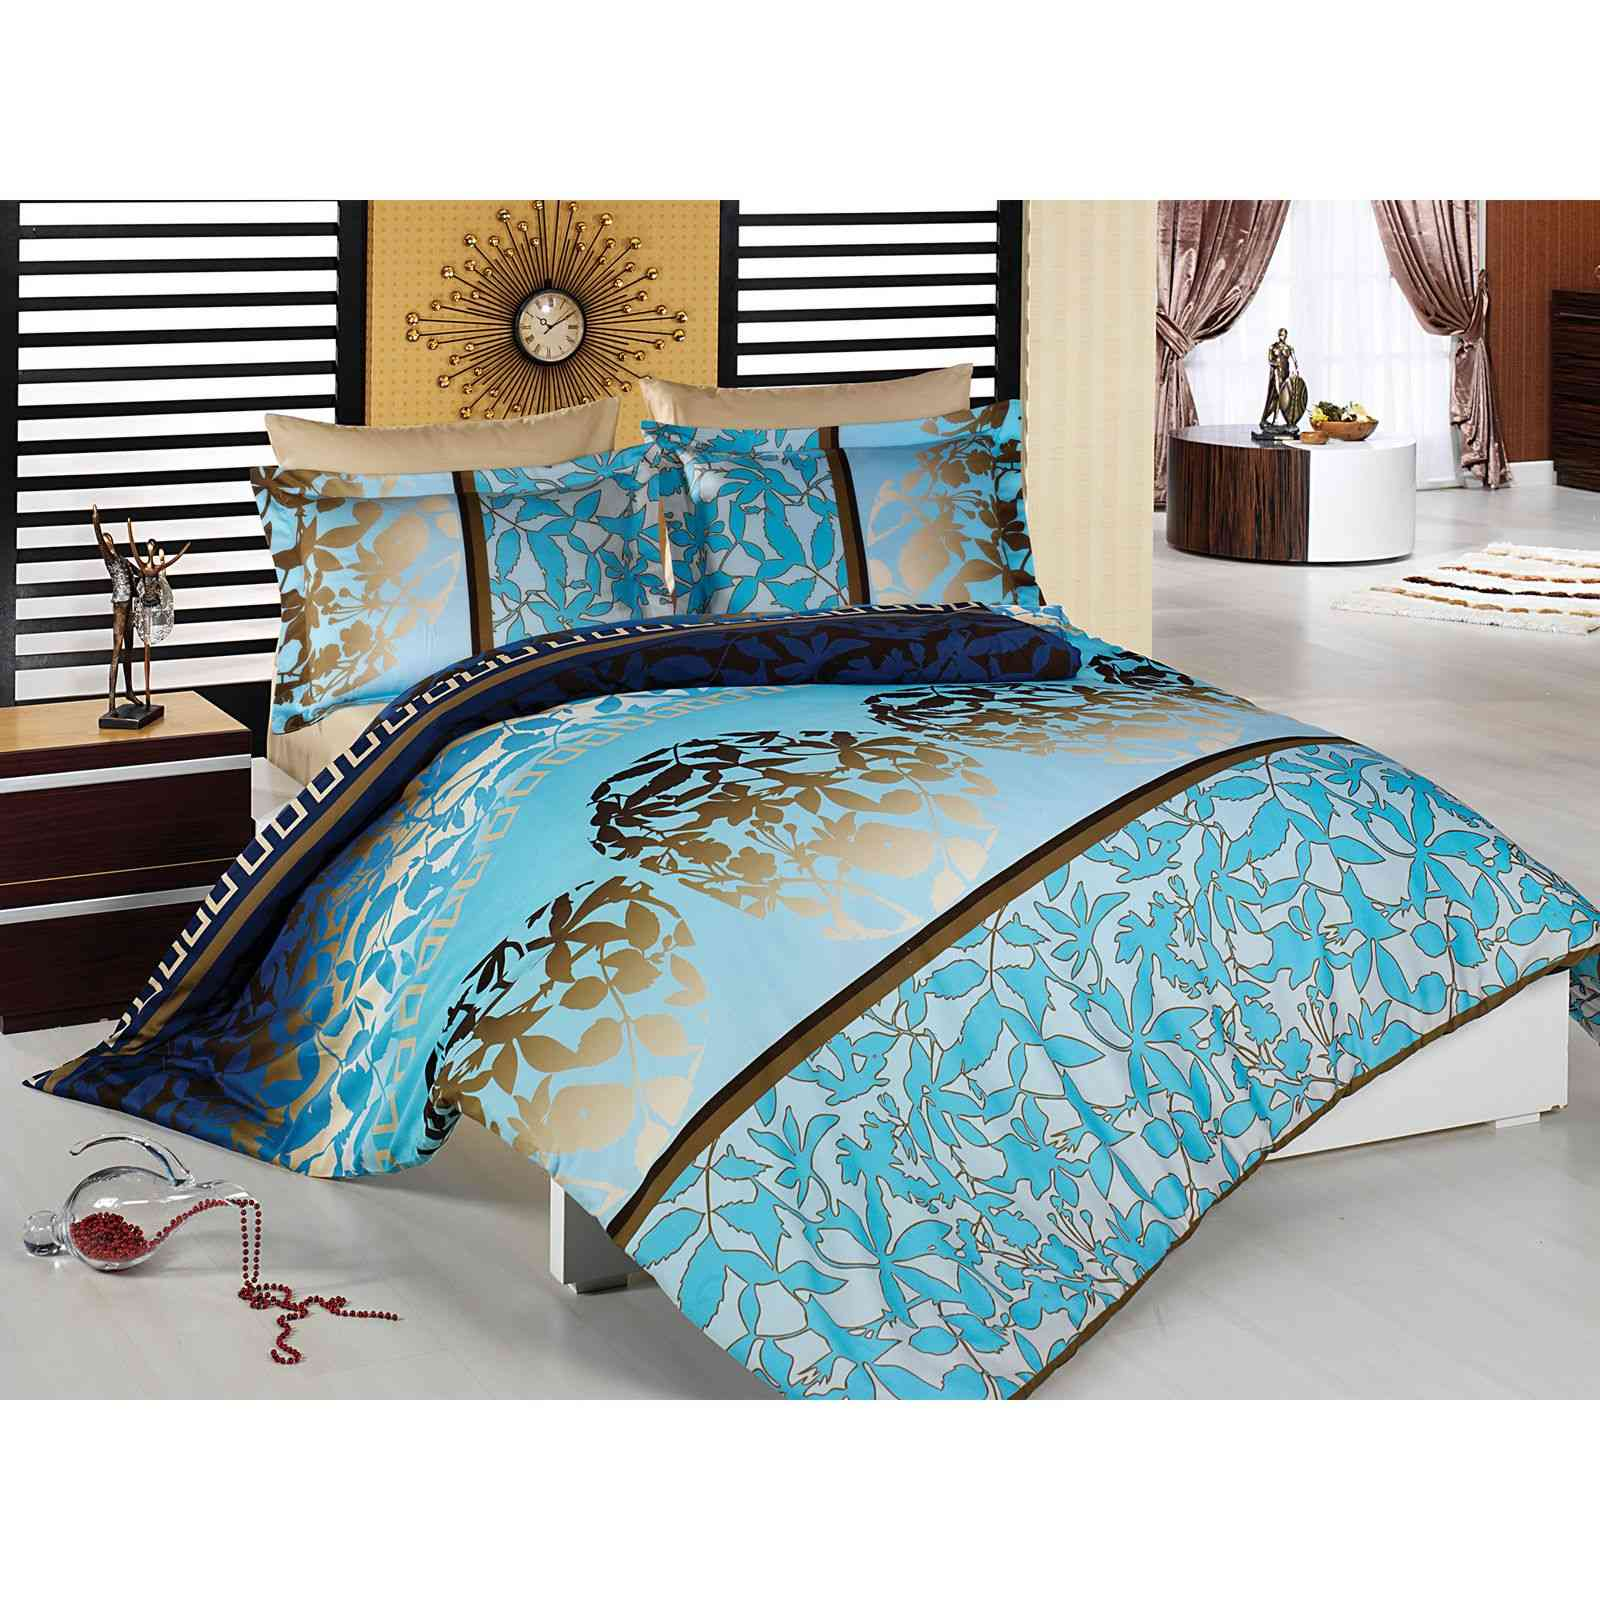 en vogue parure de lit bleu brandalley. Black Bedroom Furniture Sets. Home Design Ideas